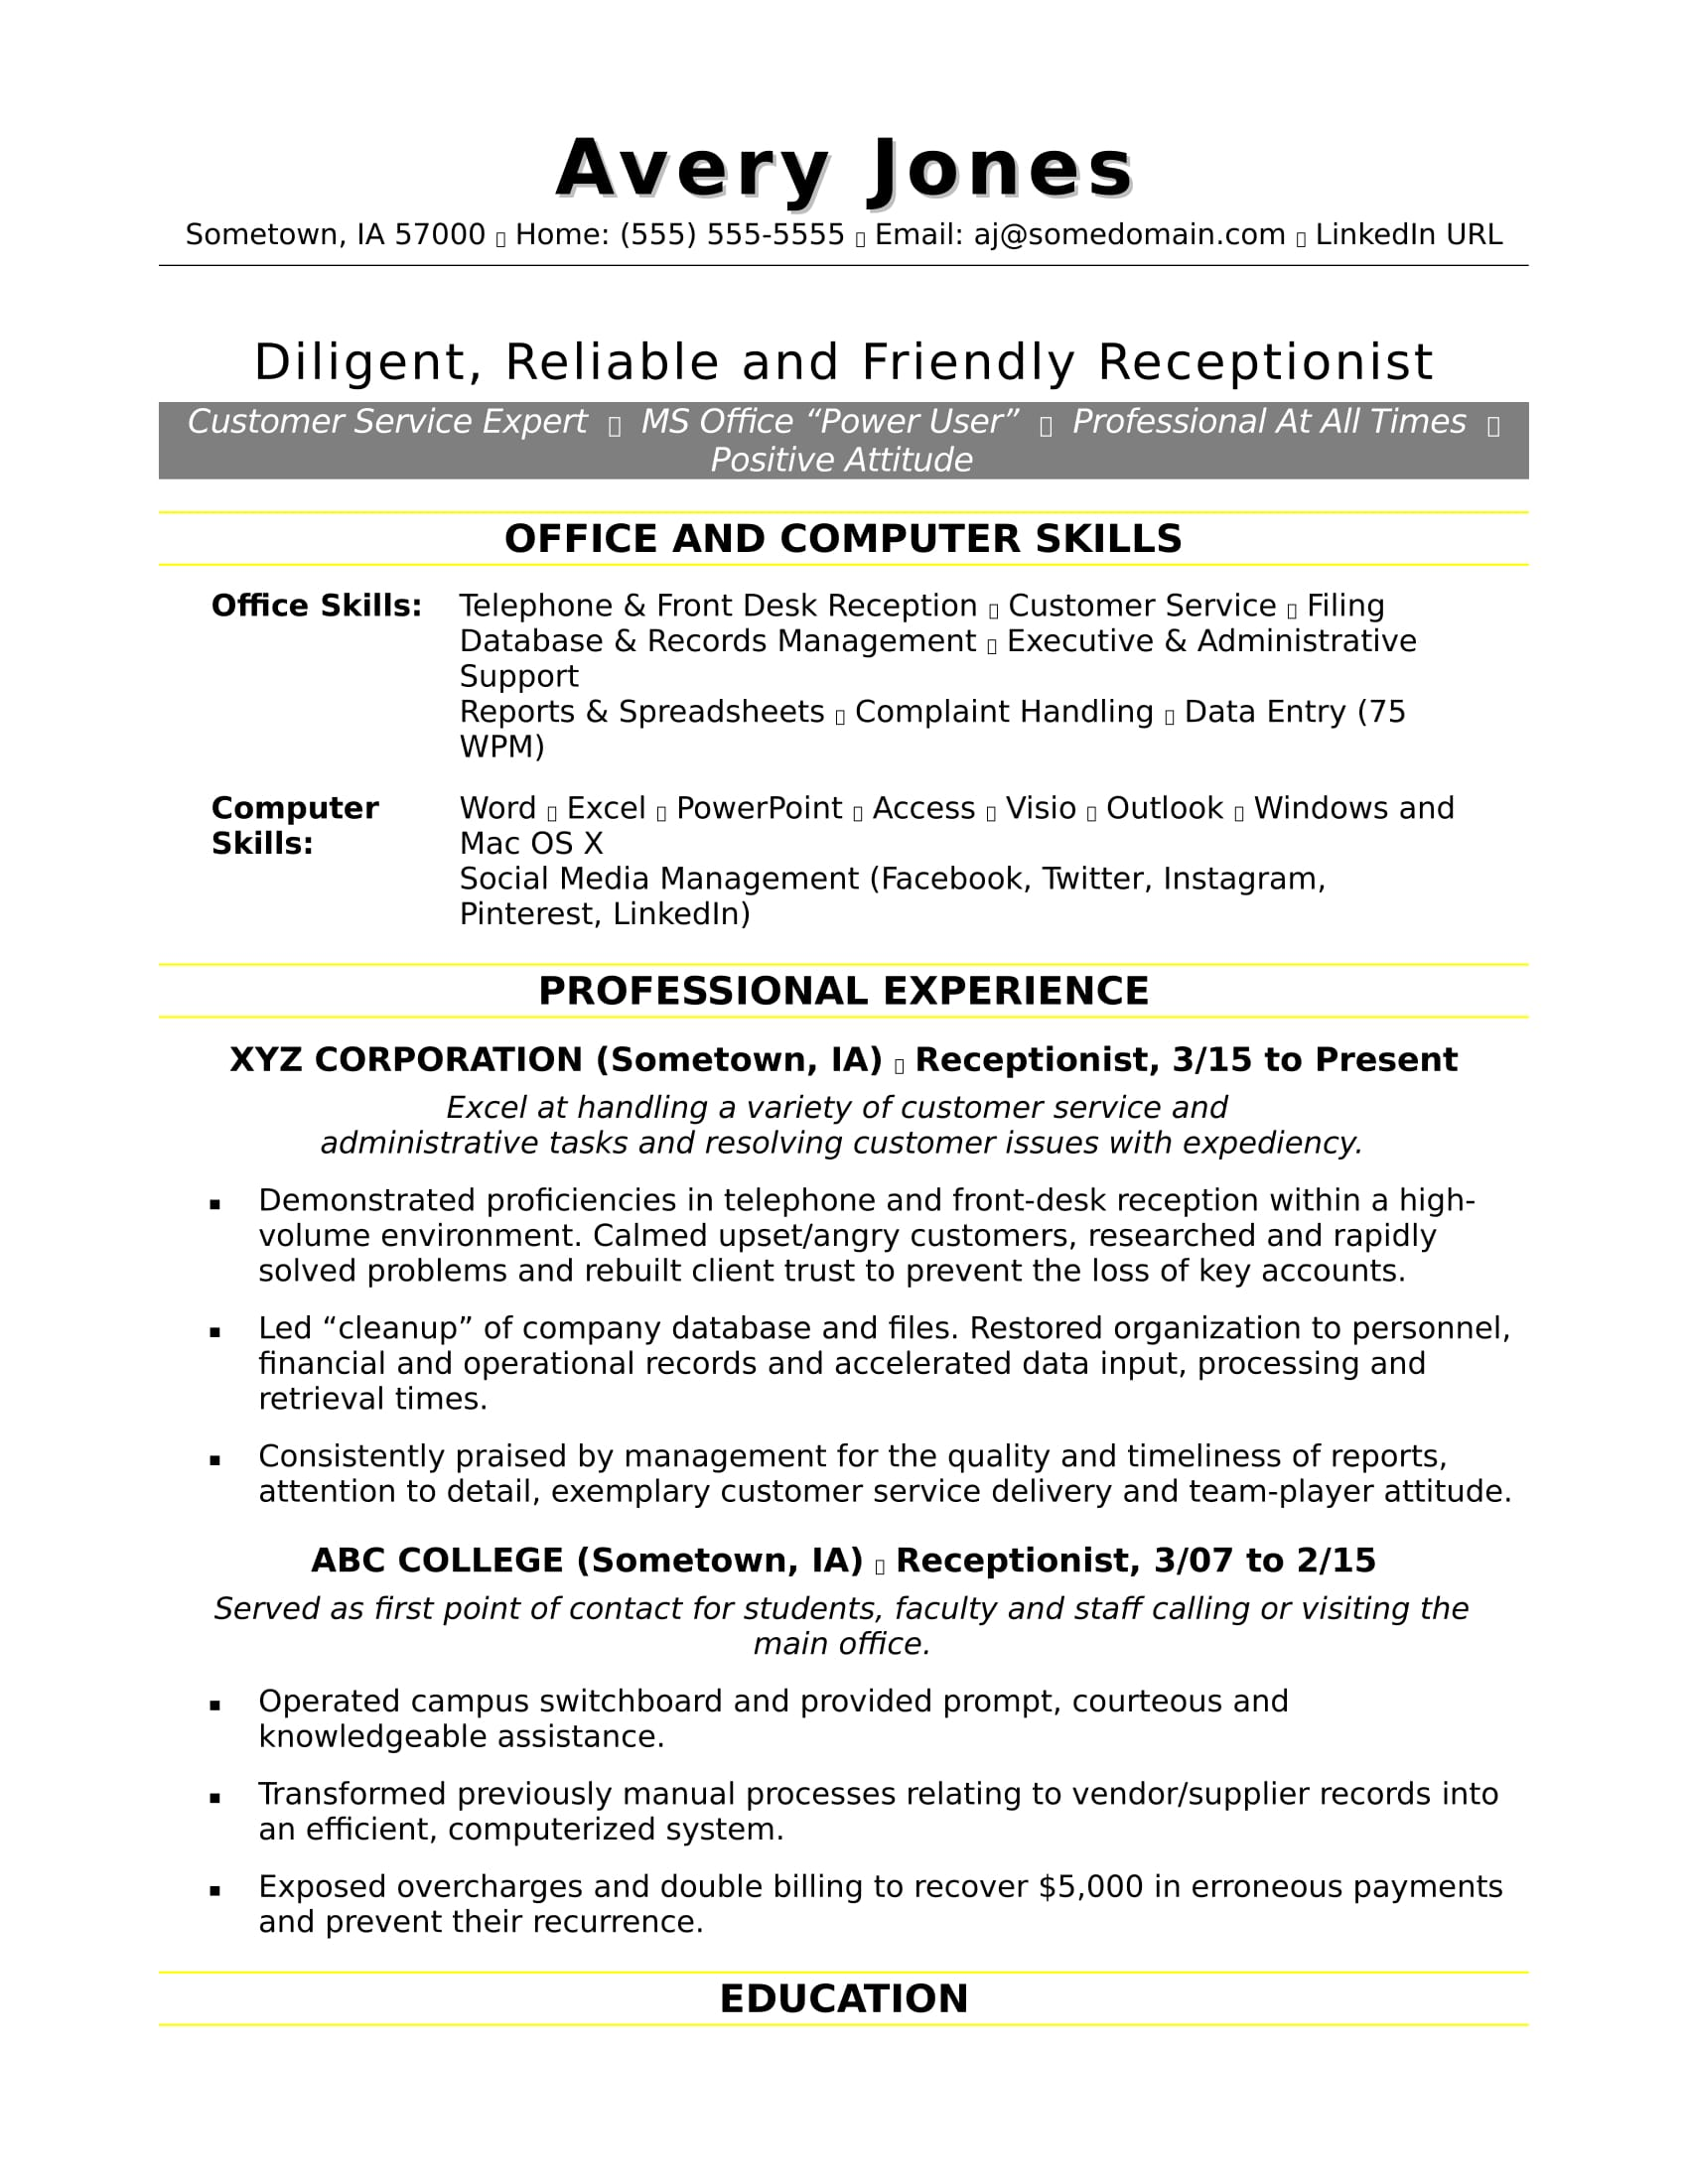 receptionist resume sample monster professional summary for urban planner objective Resume Professional Summary Resume Sample For Receptionist